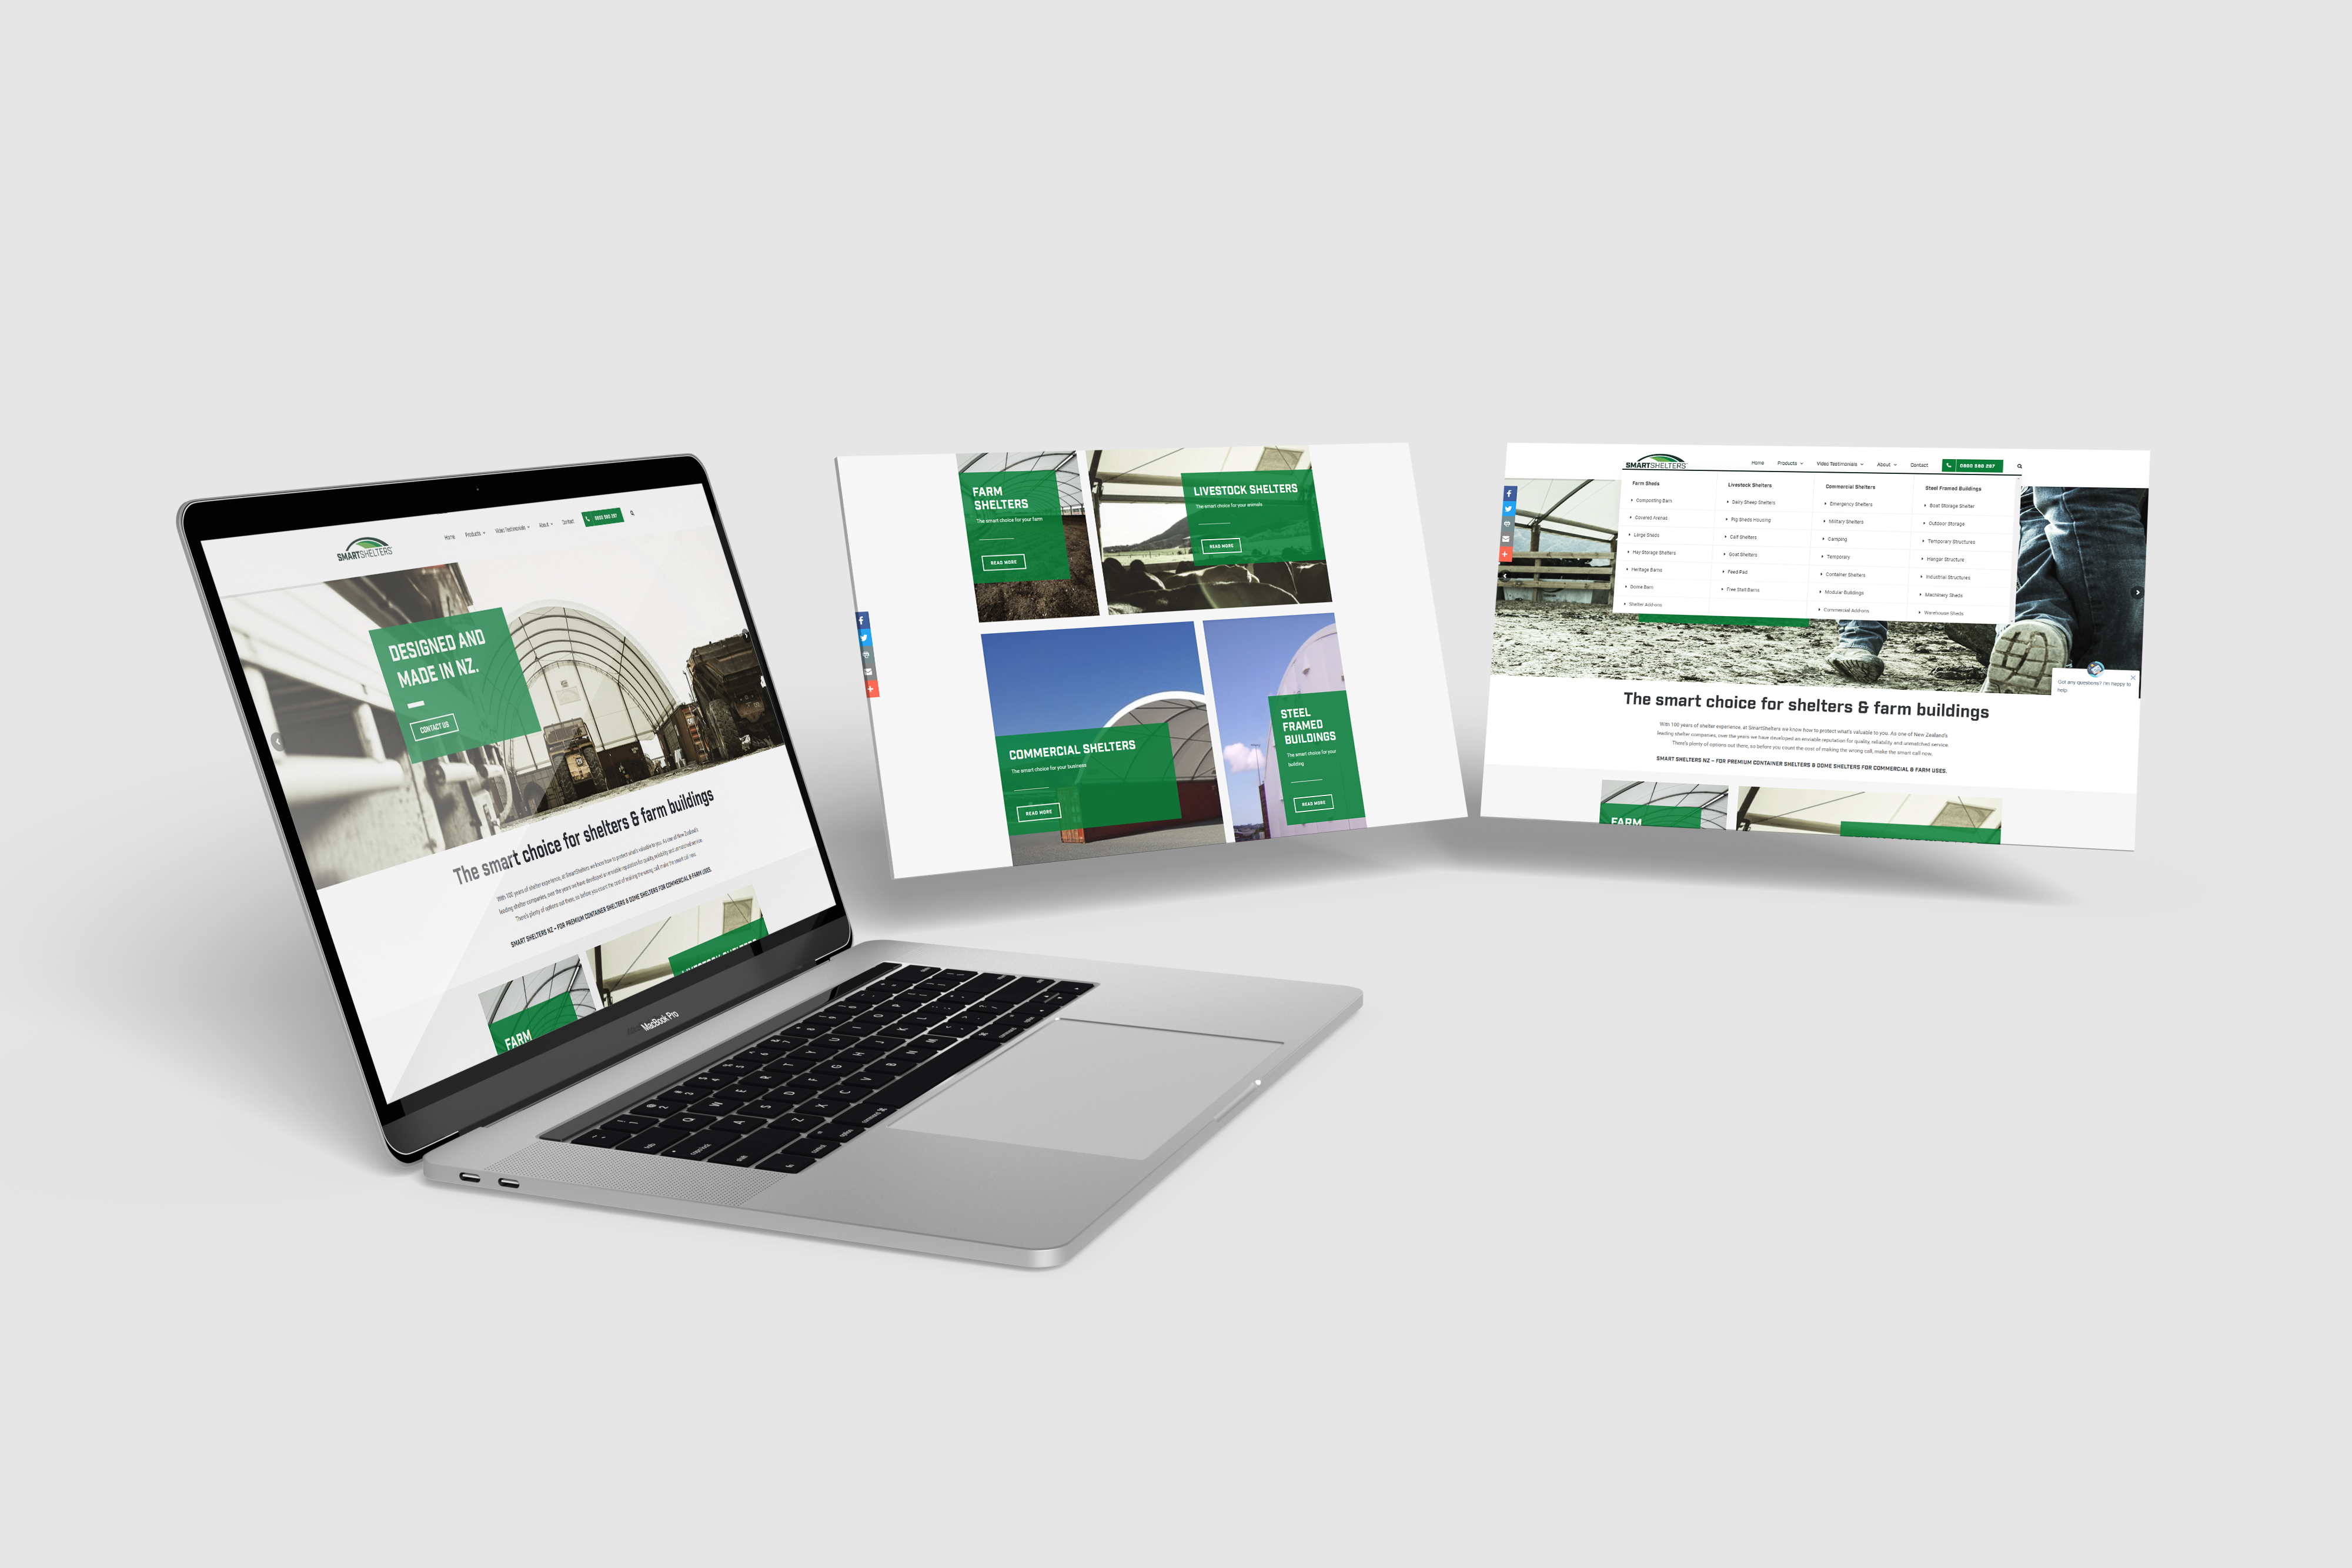 Macbook 3 screens home page smart shelters